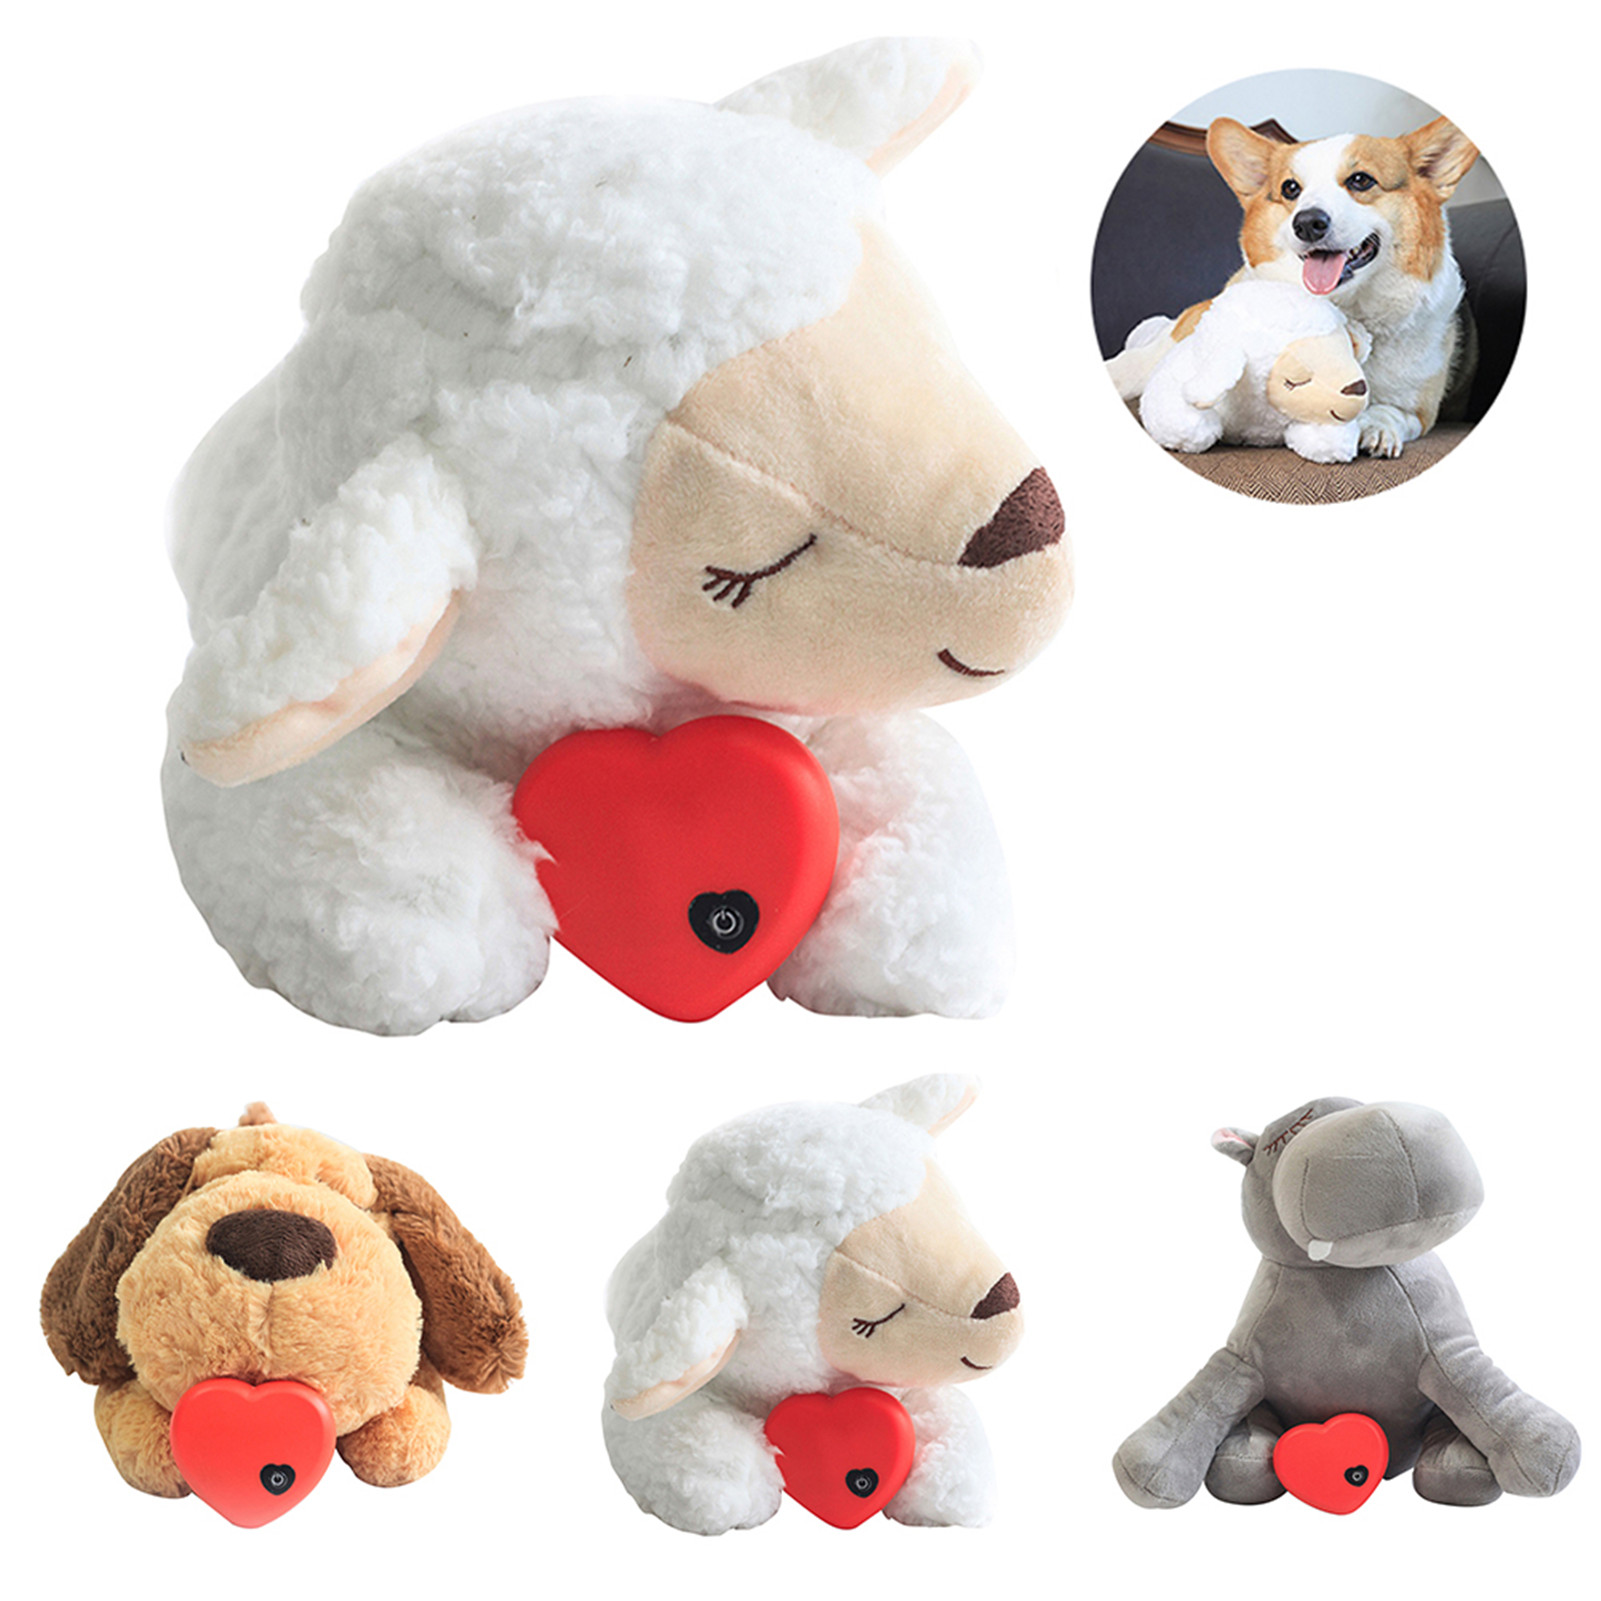 Wholesale Dog Toy Plush Toy Comfortable Behavioral Training Aid Toy Heart Beat Soothing Heating Plush Doll Sleep For Dogs Cats